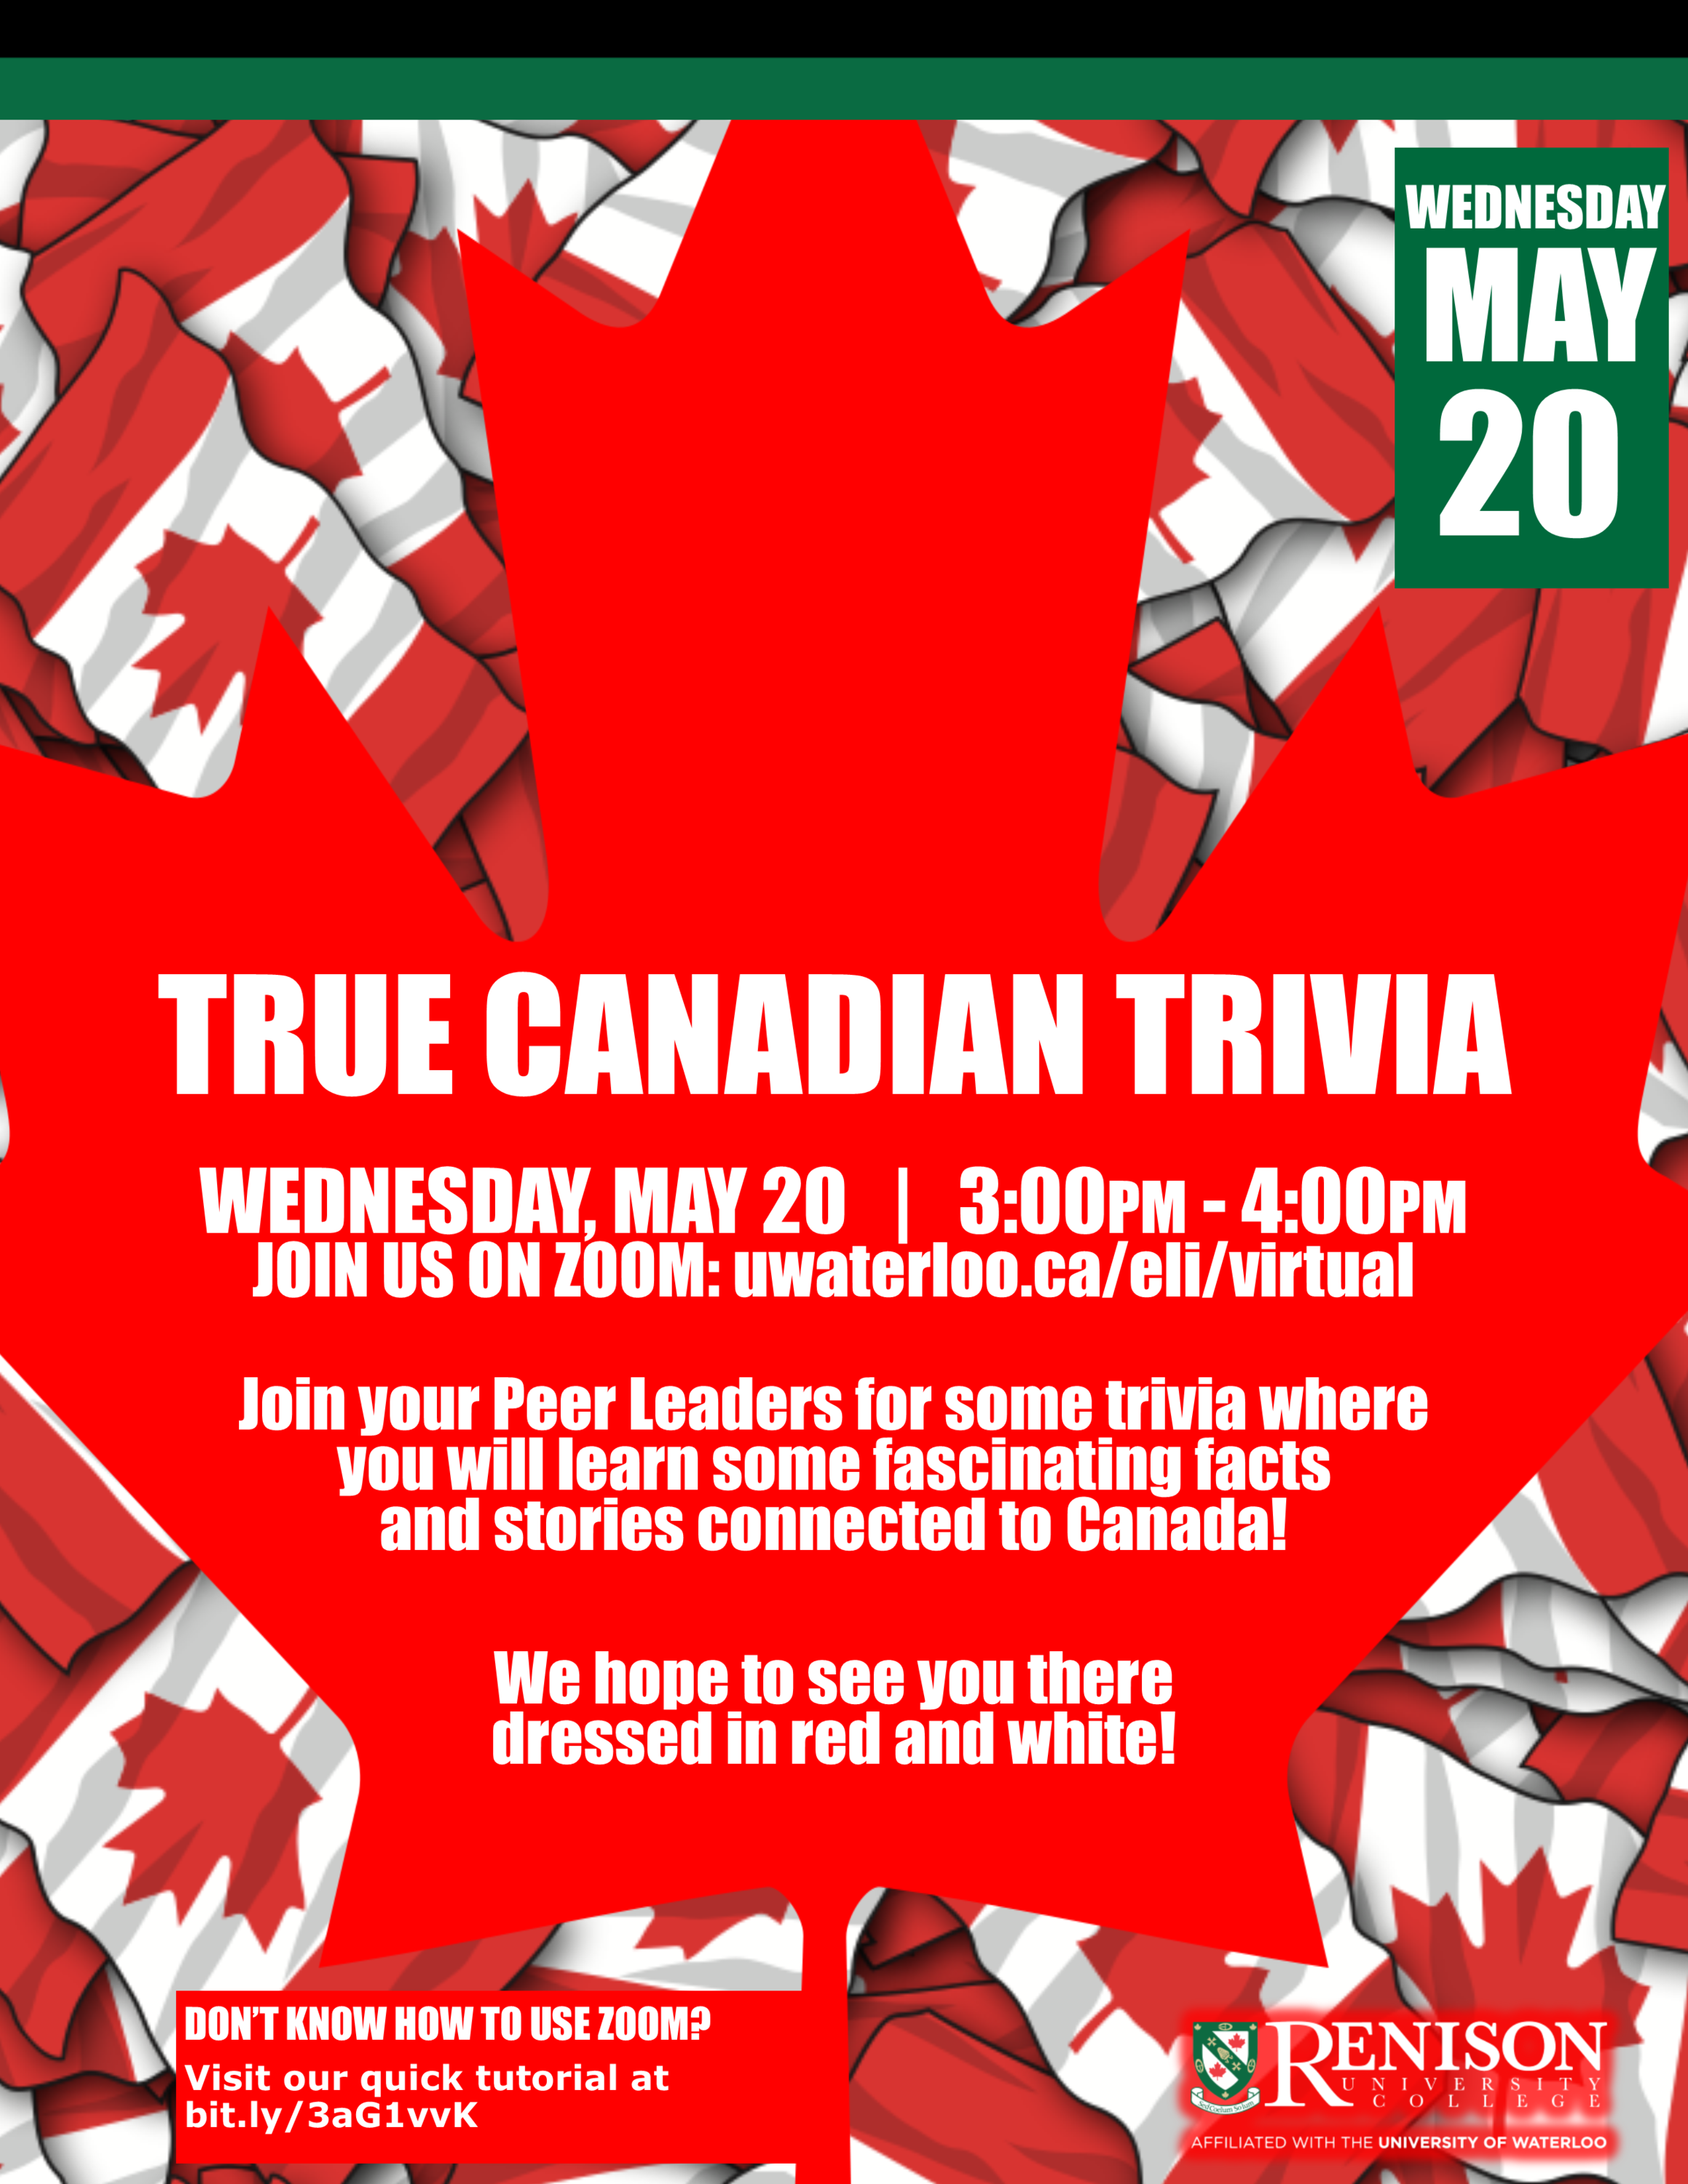 True Canadian Trivia